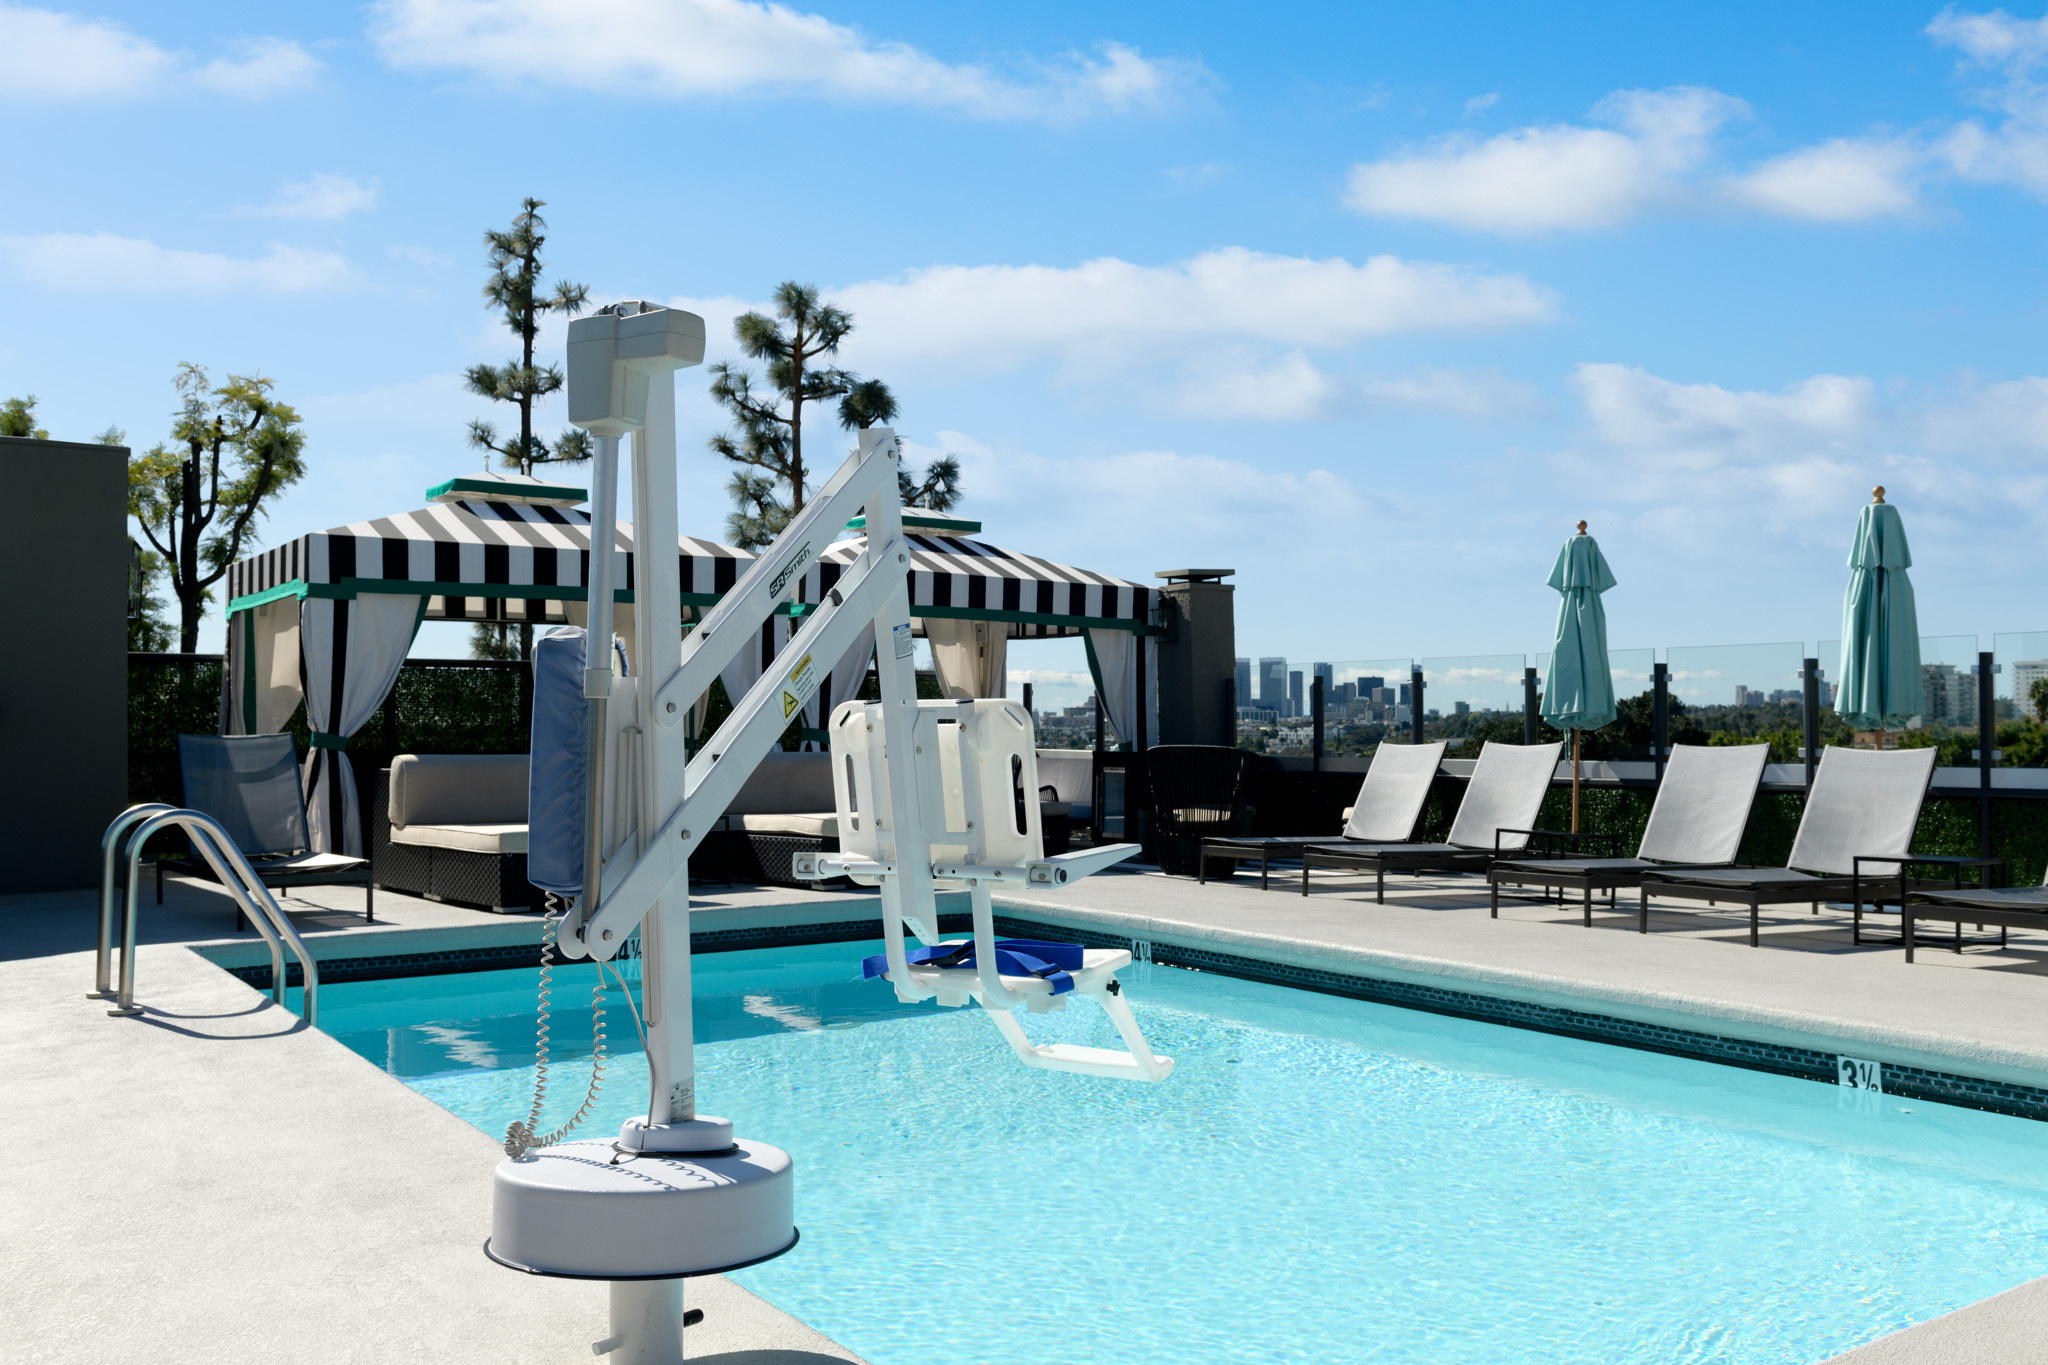 rooftop pool with ada lift, cabanas, and patio lounge chairs